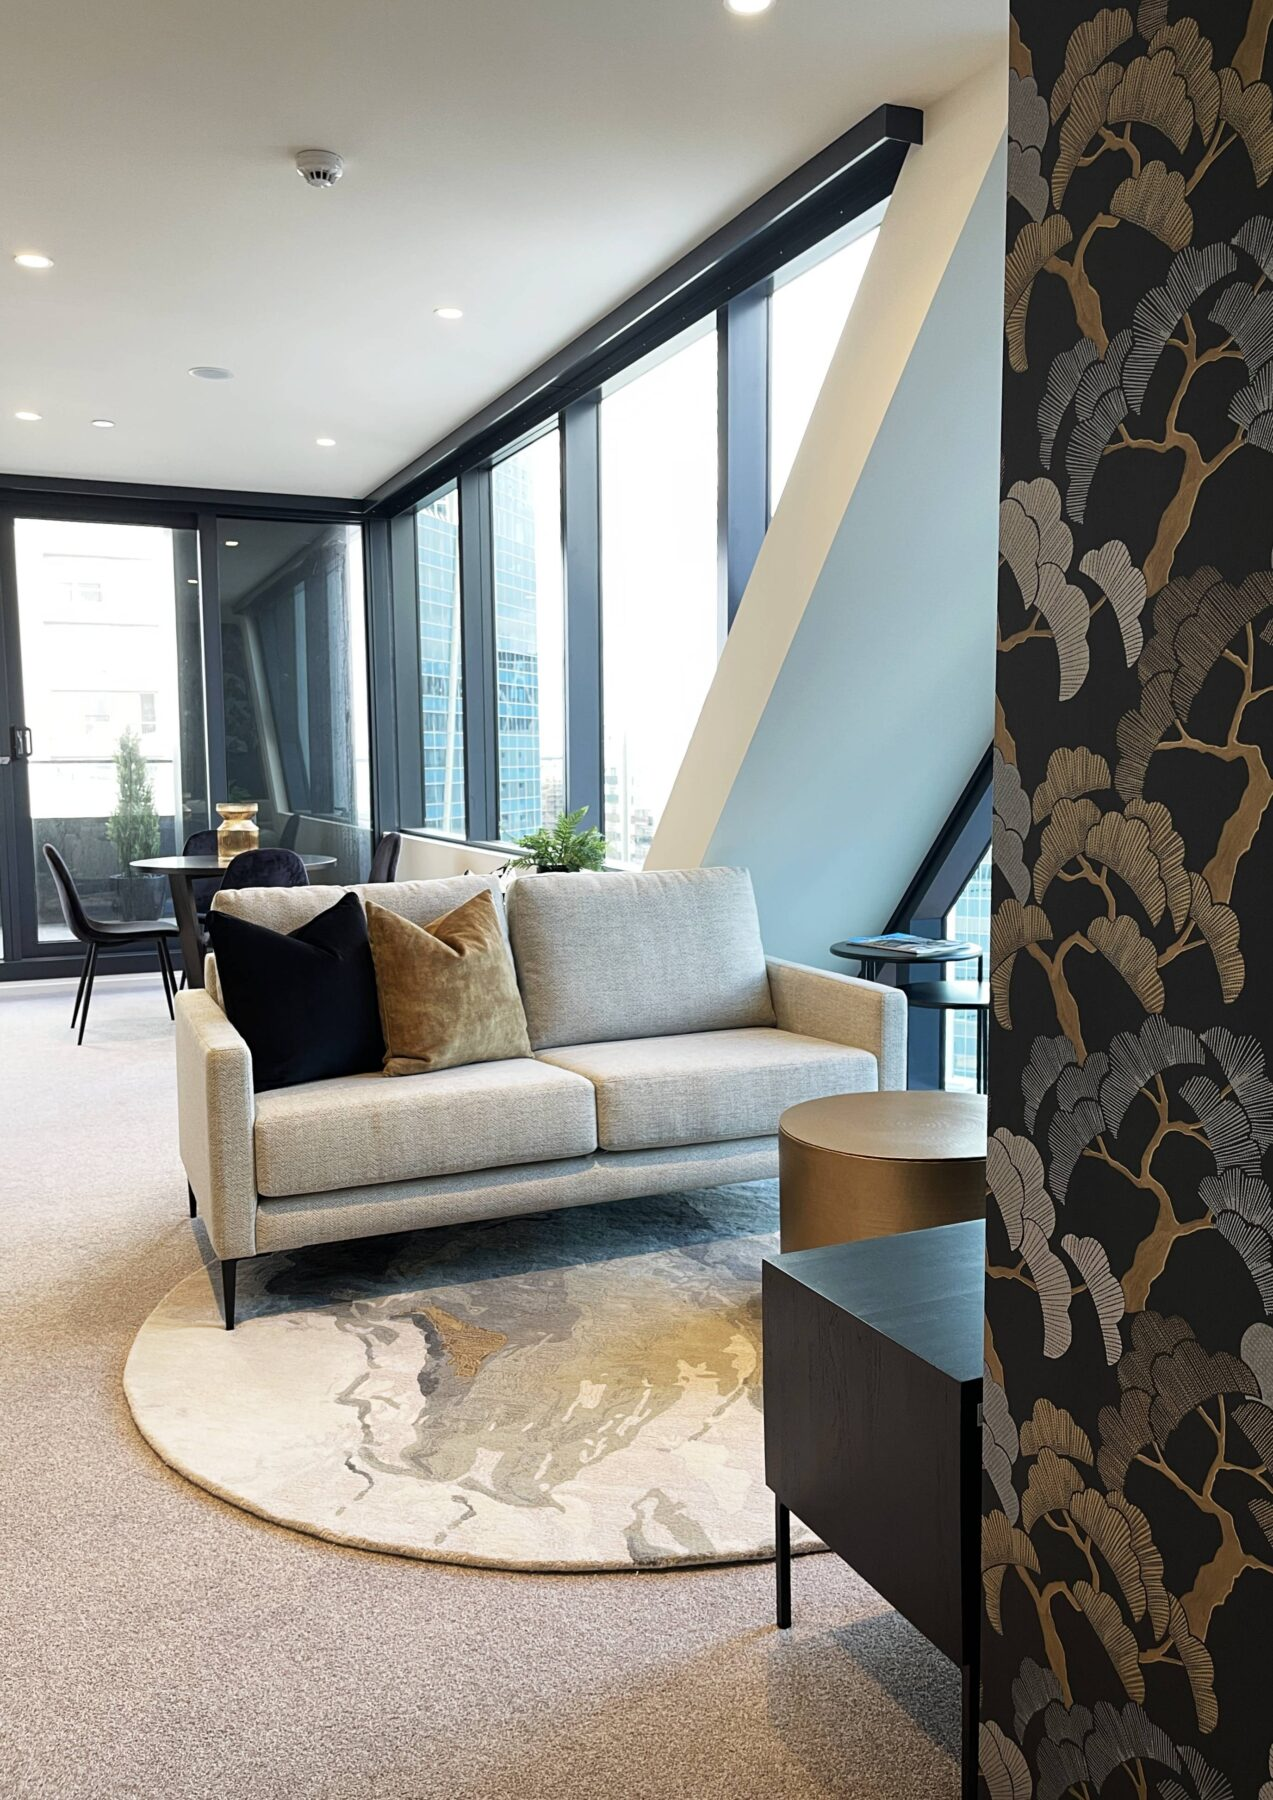 Modern contemporary luxury apartment lounge with feature black and gold wallpaper, simple styling, round rug, gold drum coffee table and auckland city views